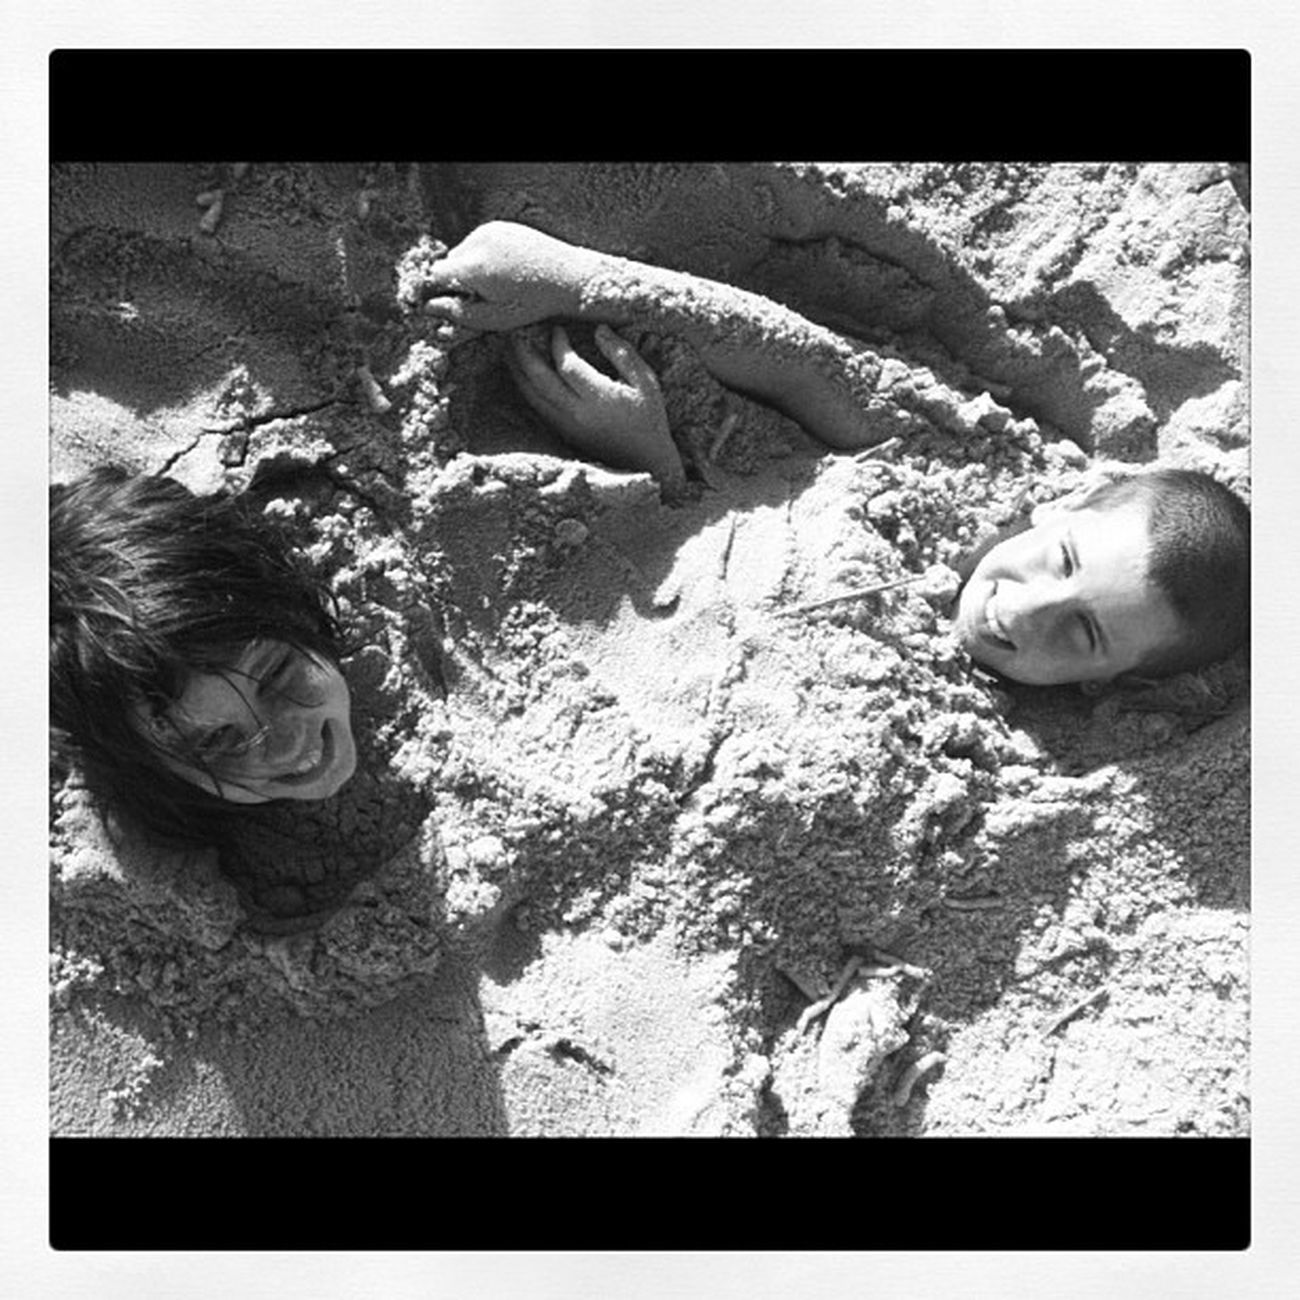 Northcarolina Oakislandnc Mylife Kidsphotography Saltlife Looking For Buried Treasure Buried In Sand Fun In The Sun